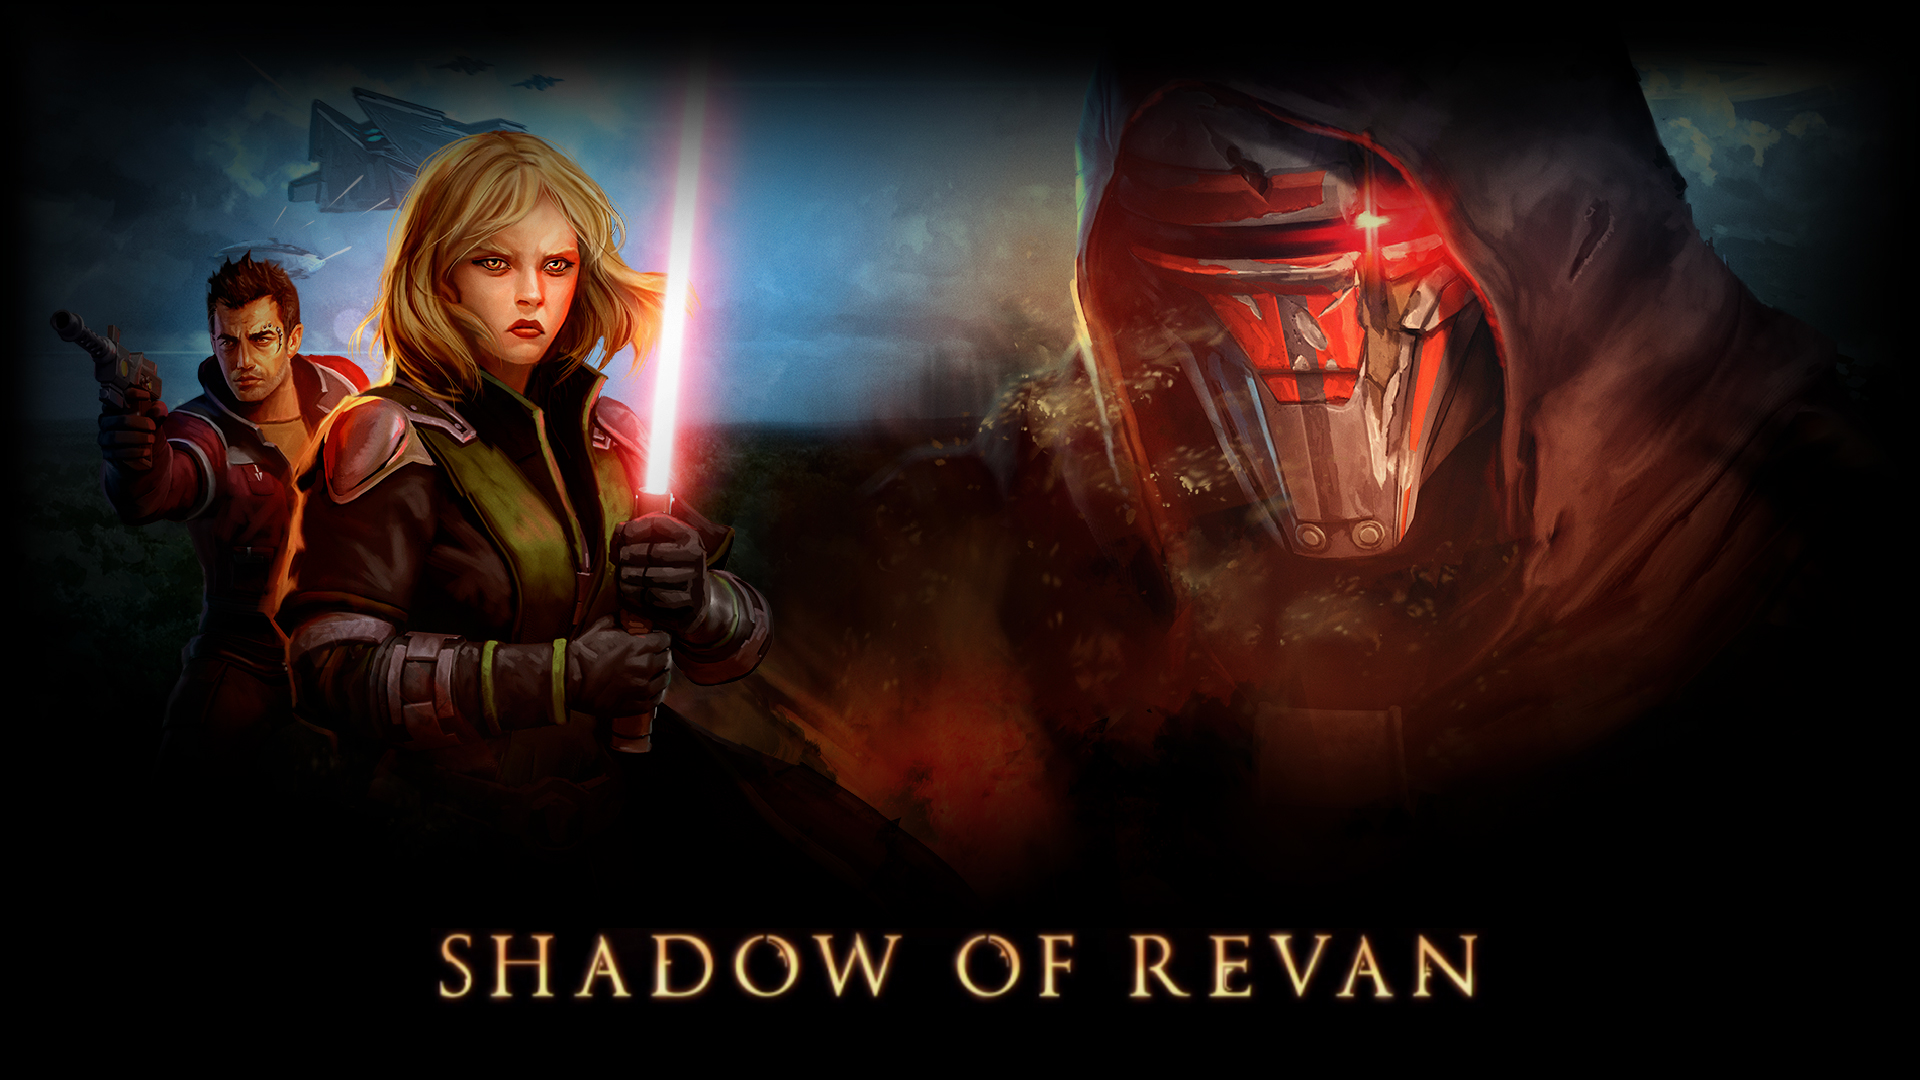 Star Wars Old Republic Shadow Of Revan 1920x1080 Wallpaper Teahub Io